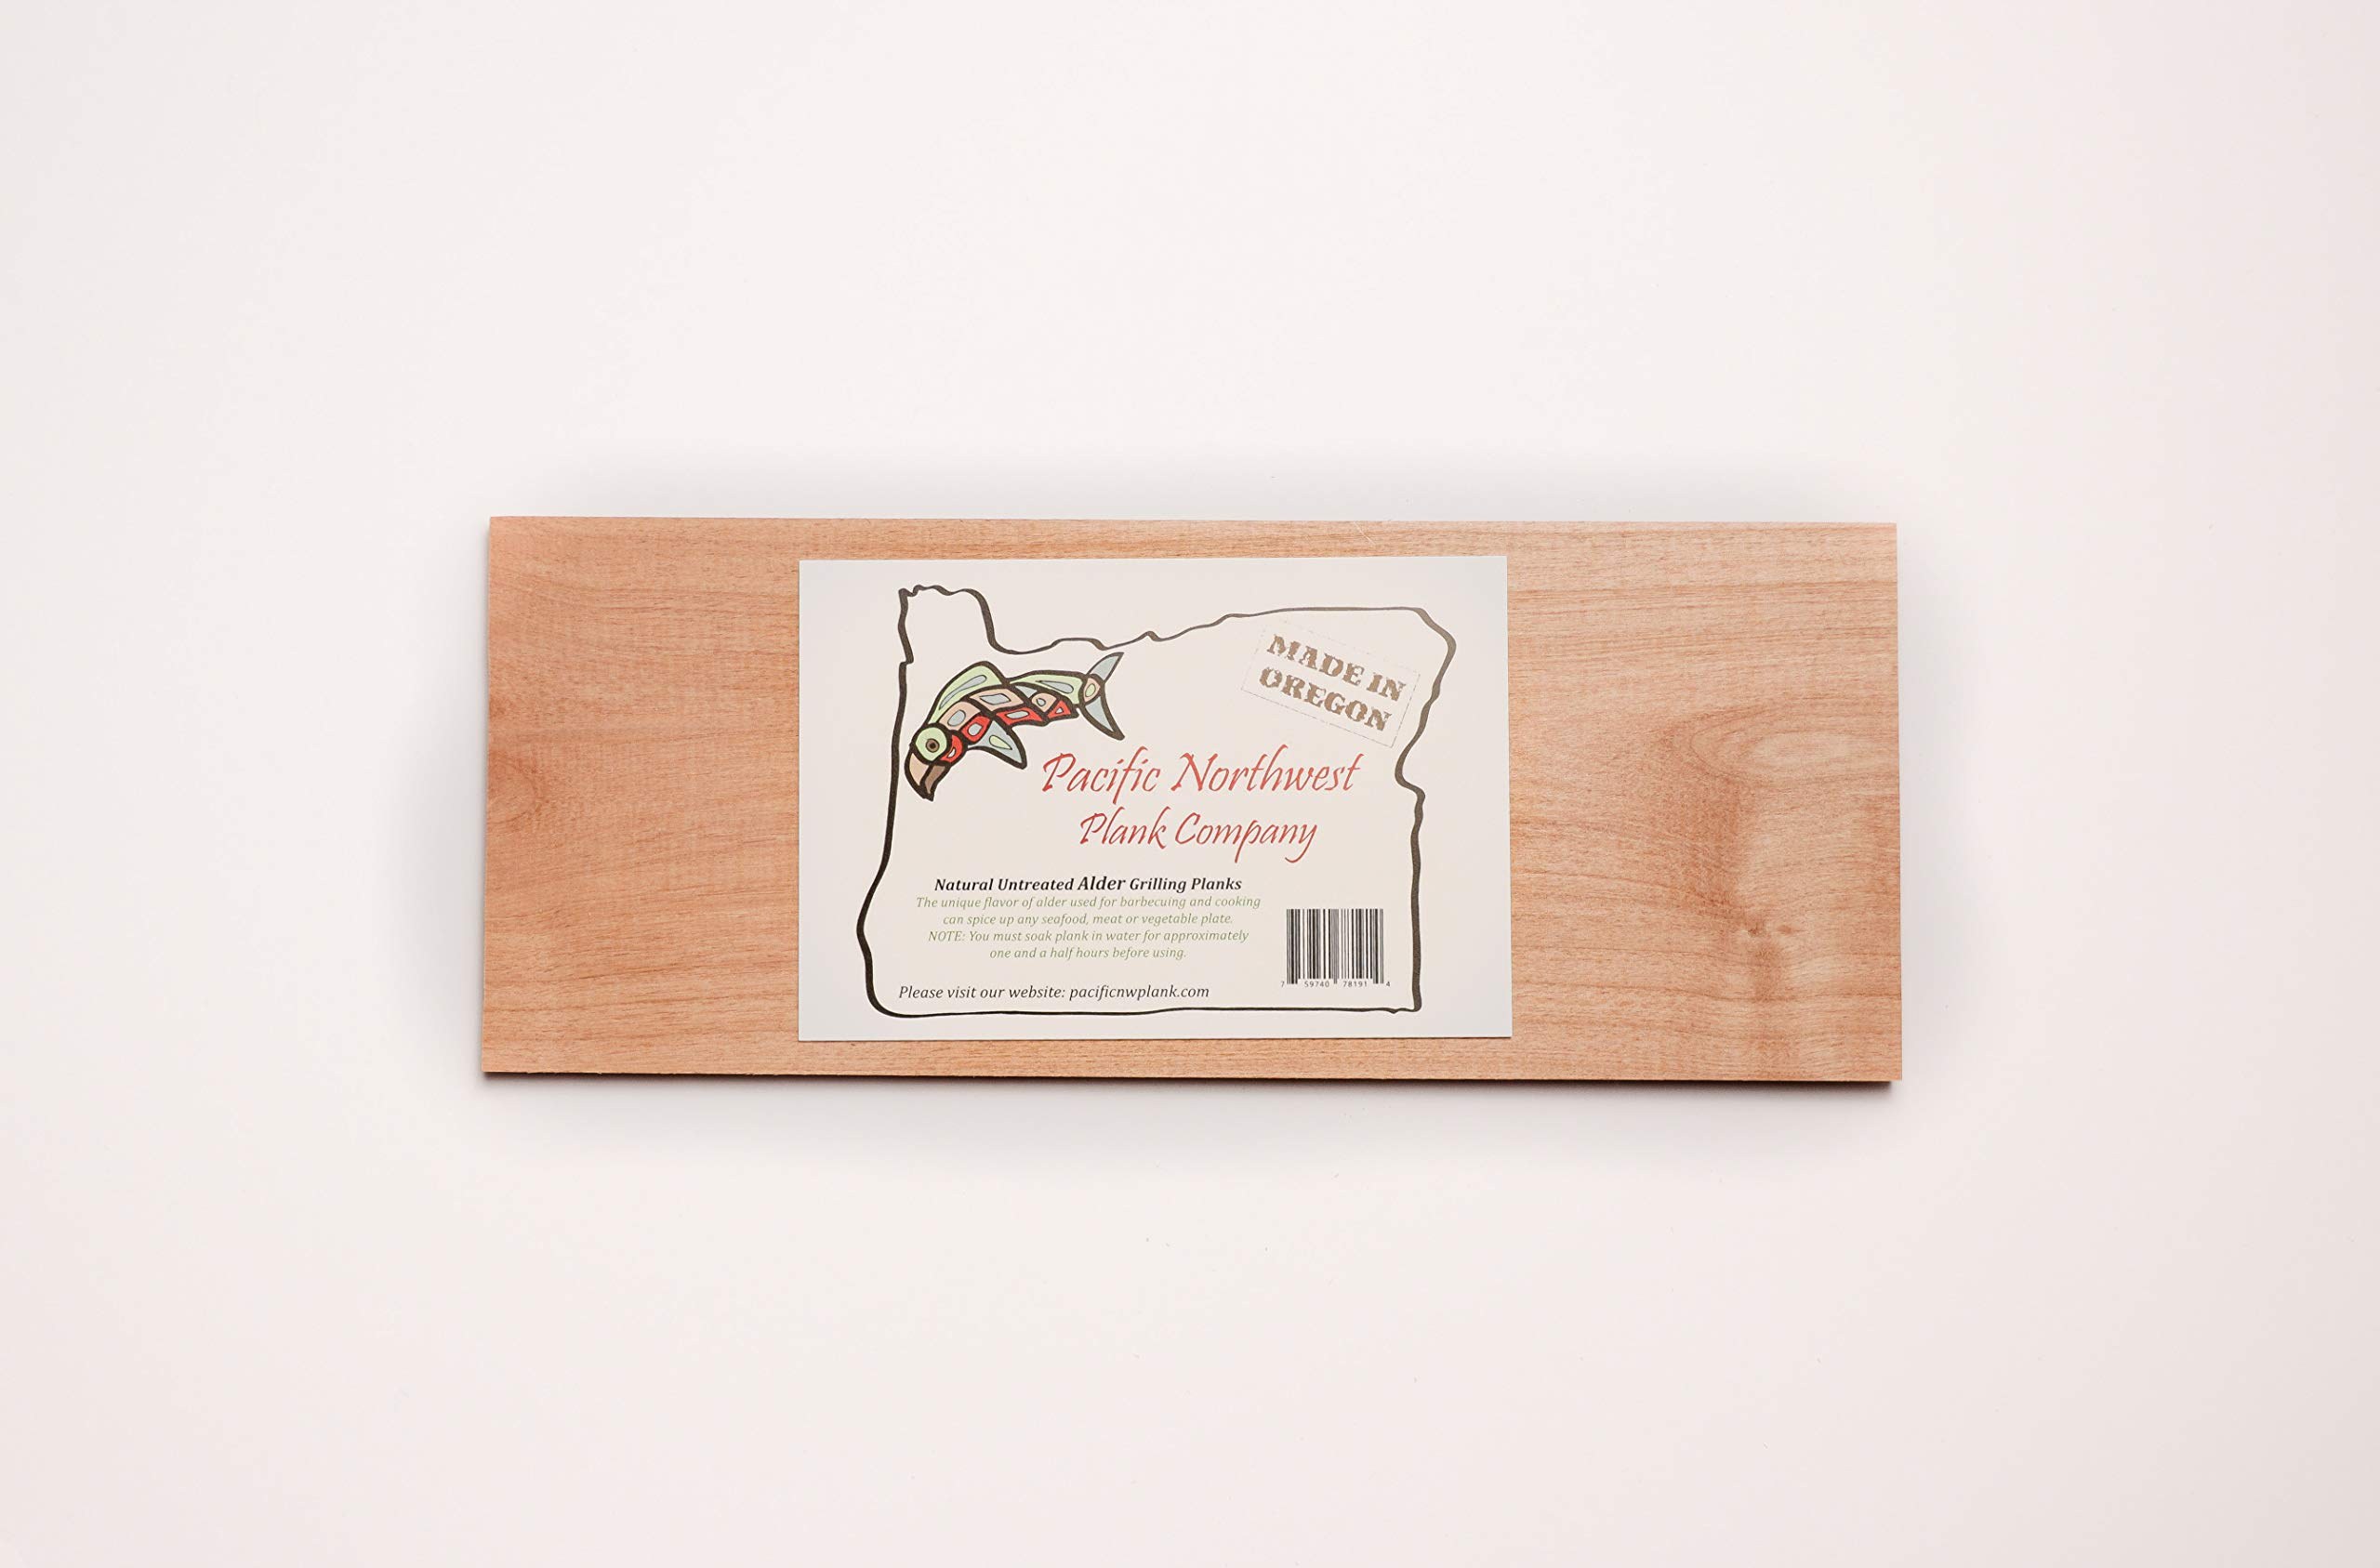 Alder Grilling Planks - 10 Pack 5 1/2'' x 12'' Premium Grilling Planks by Pacific Northwest Plank Company